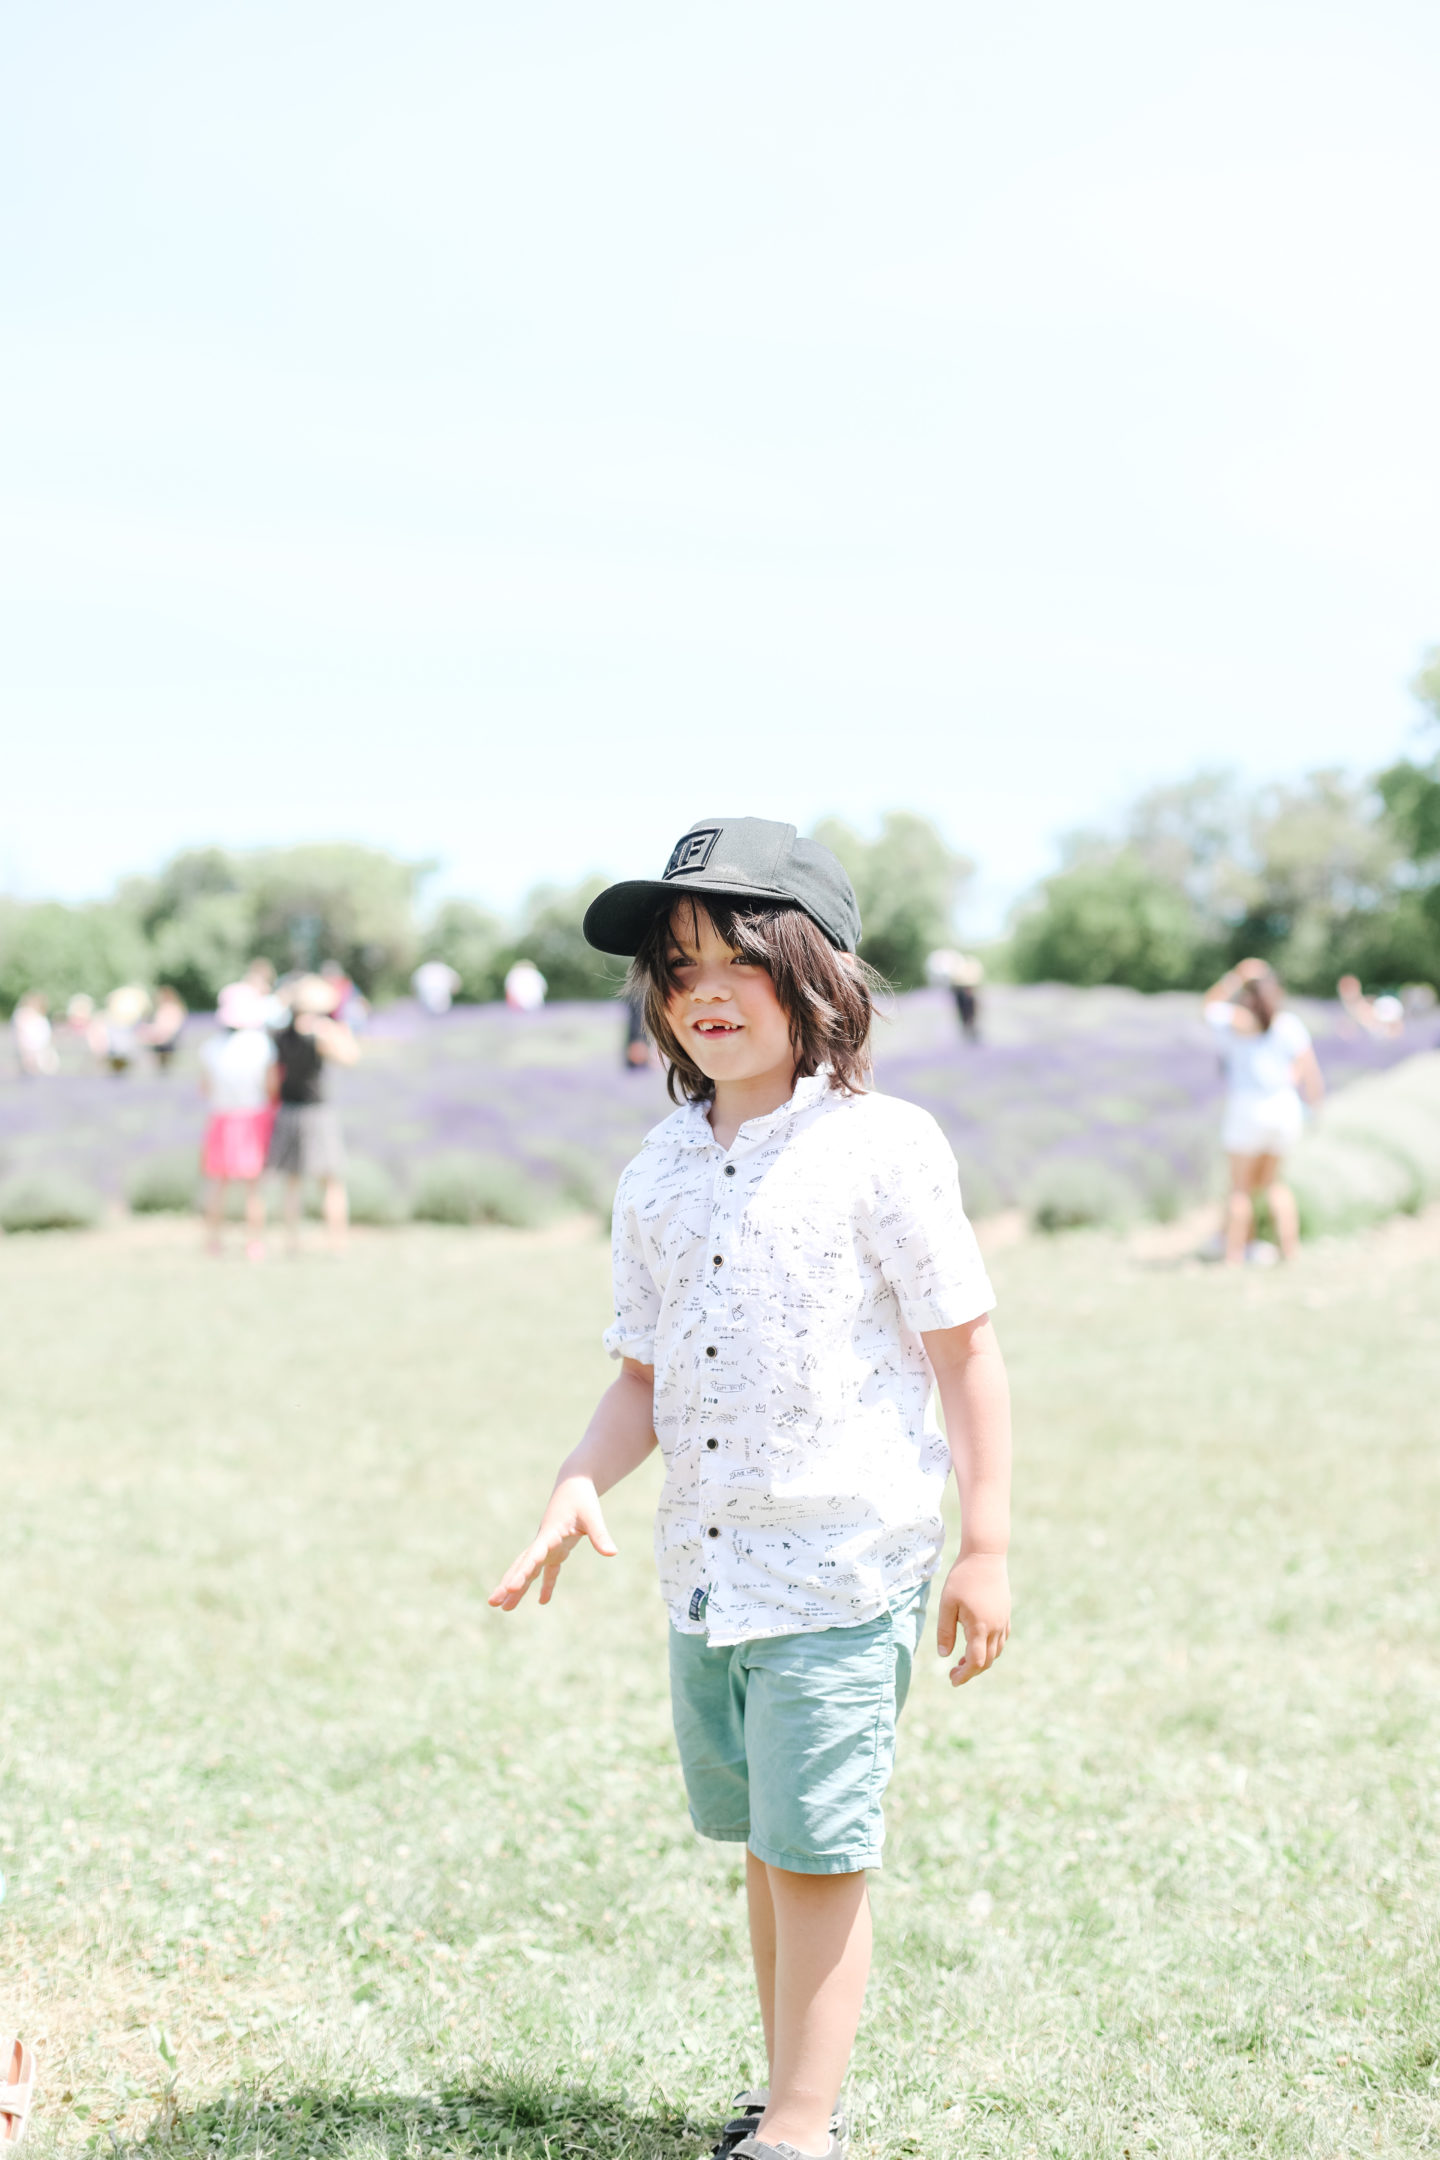 lavender field and a boy